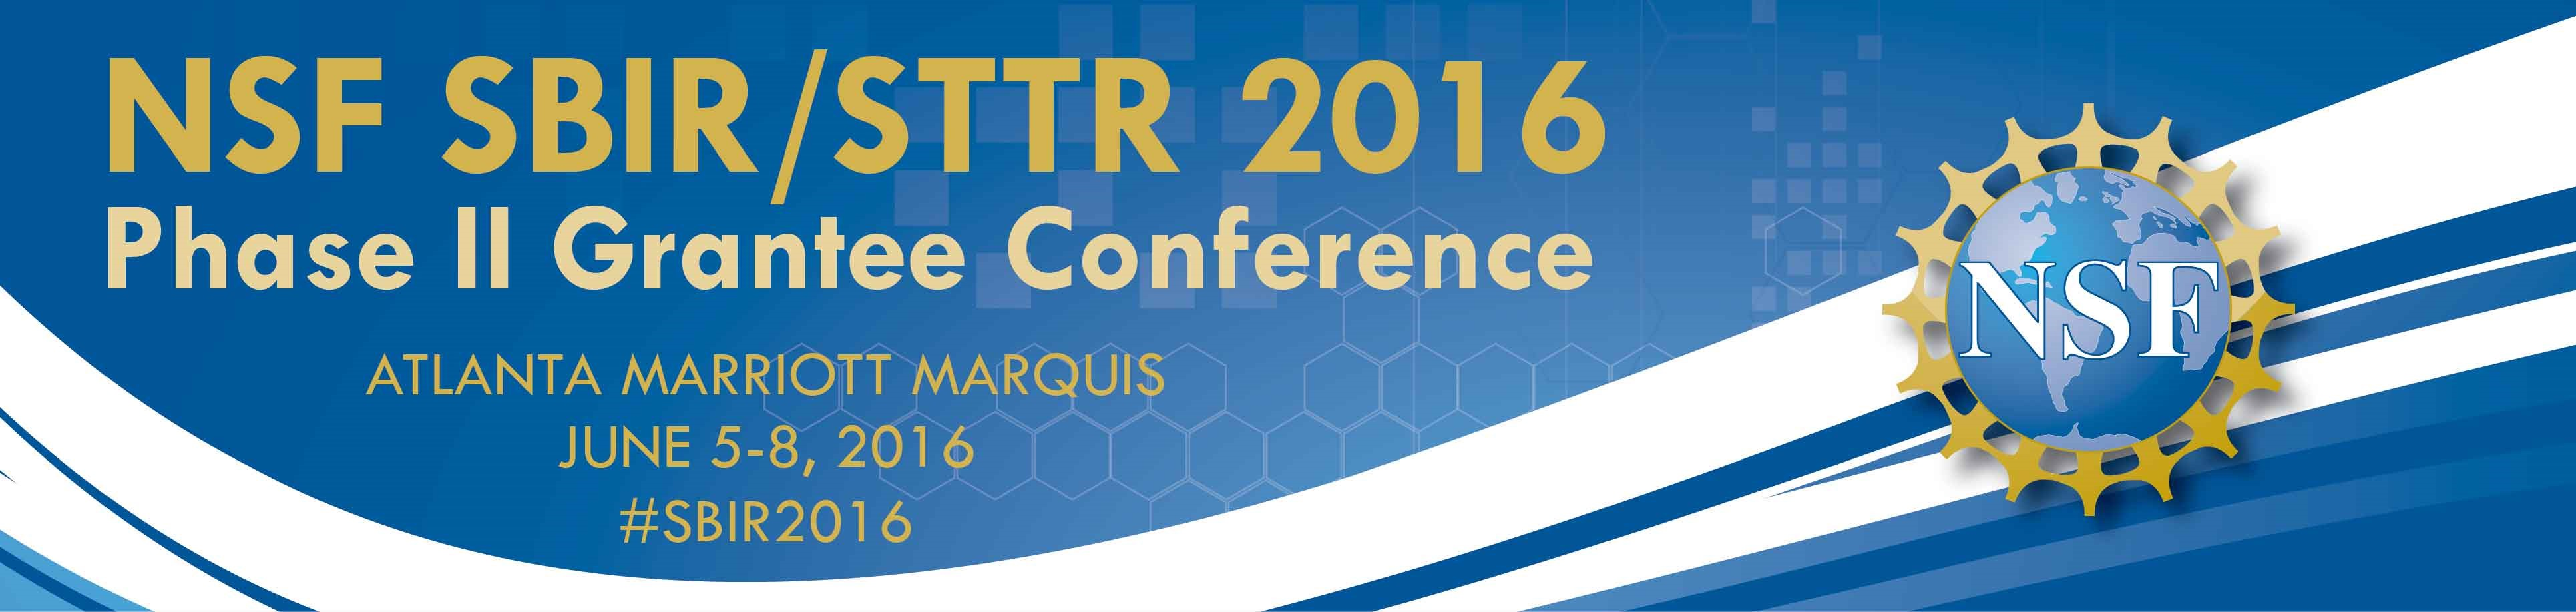 NSF SBIR/STTR Phase II Grantee 2016 Conference